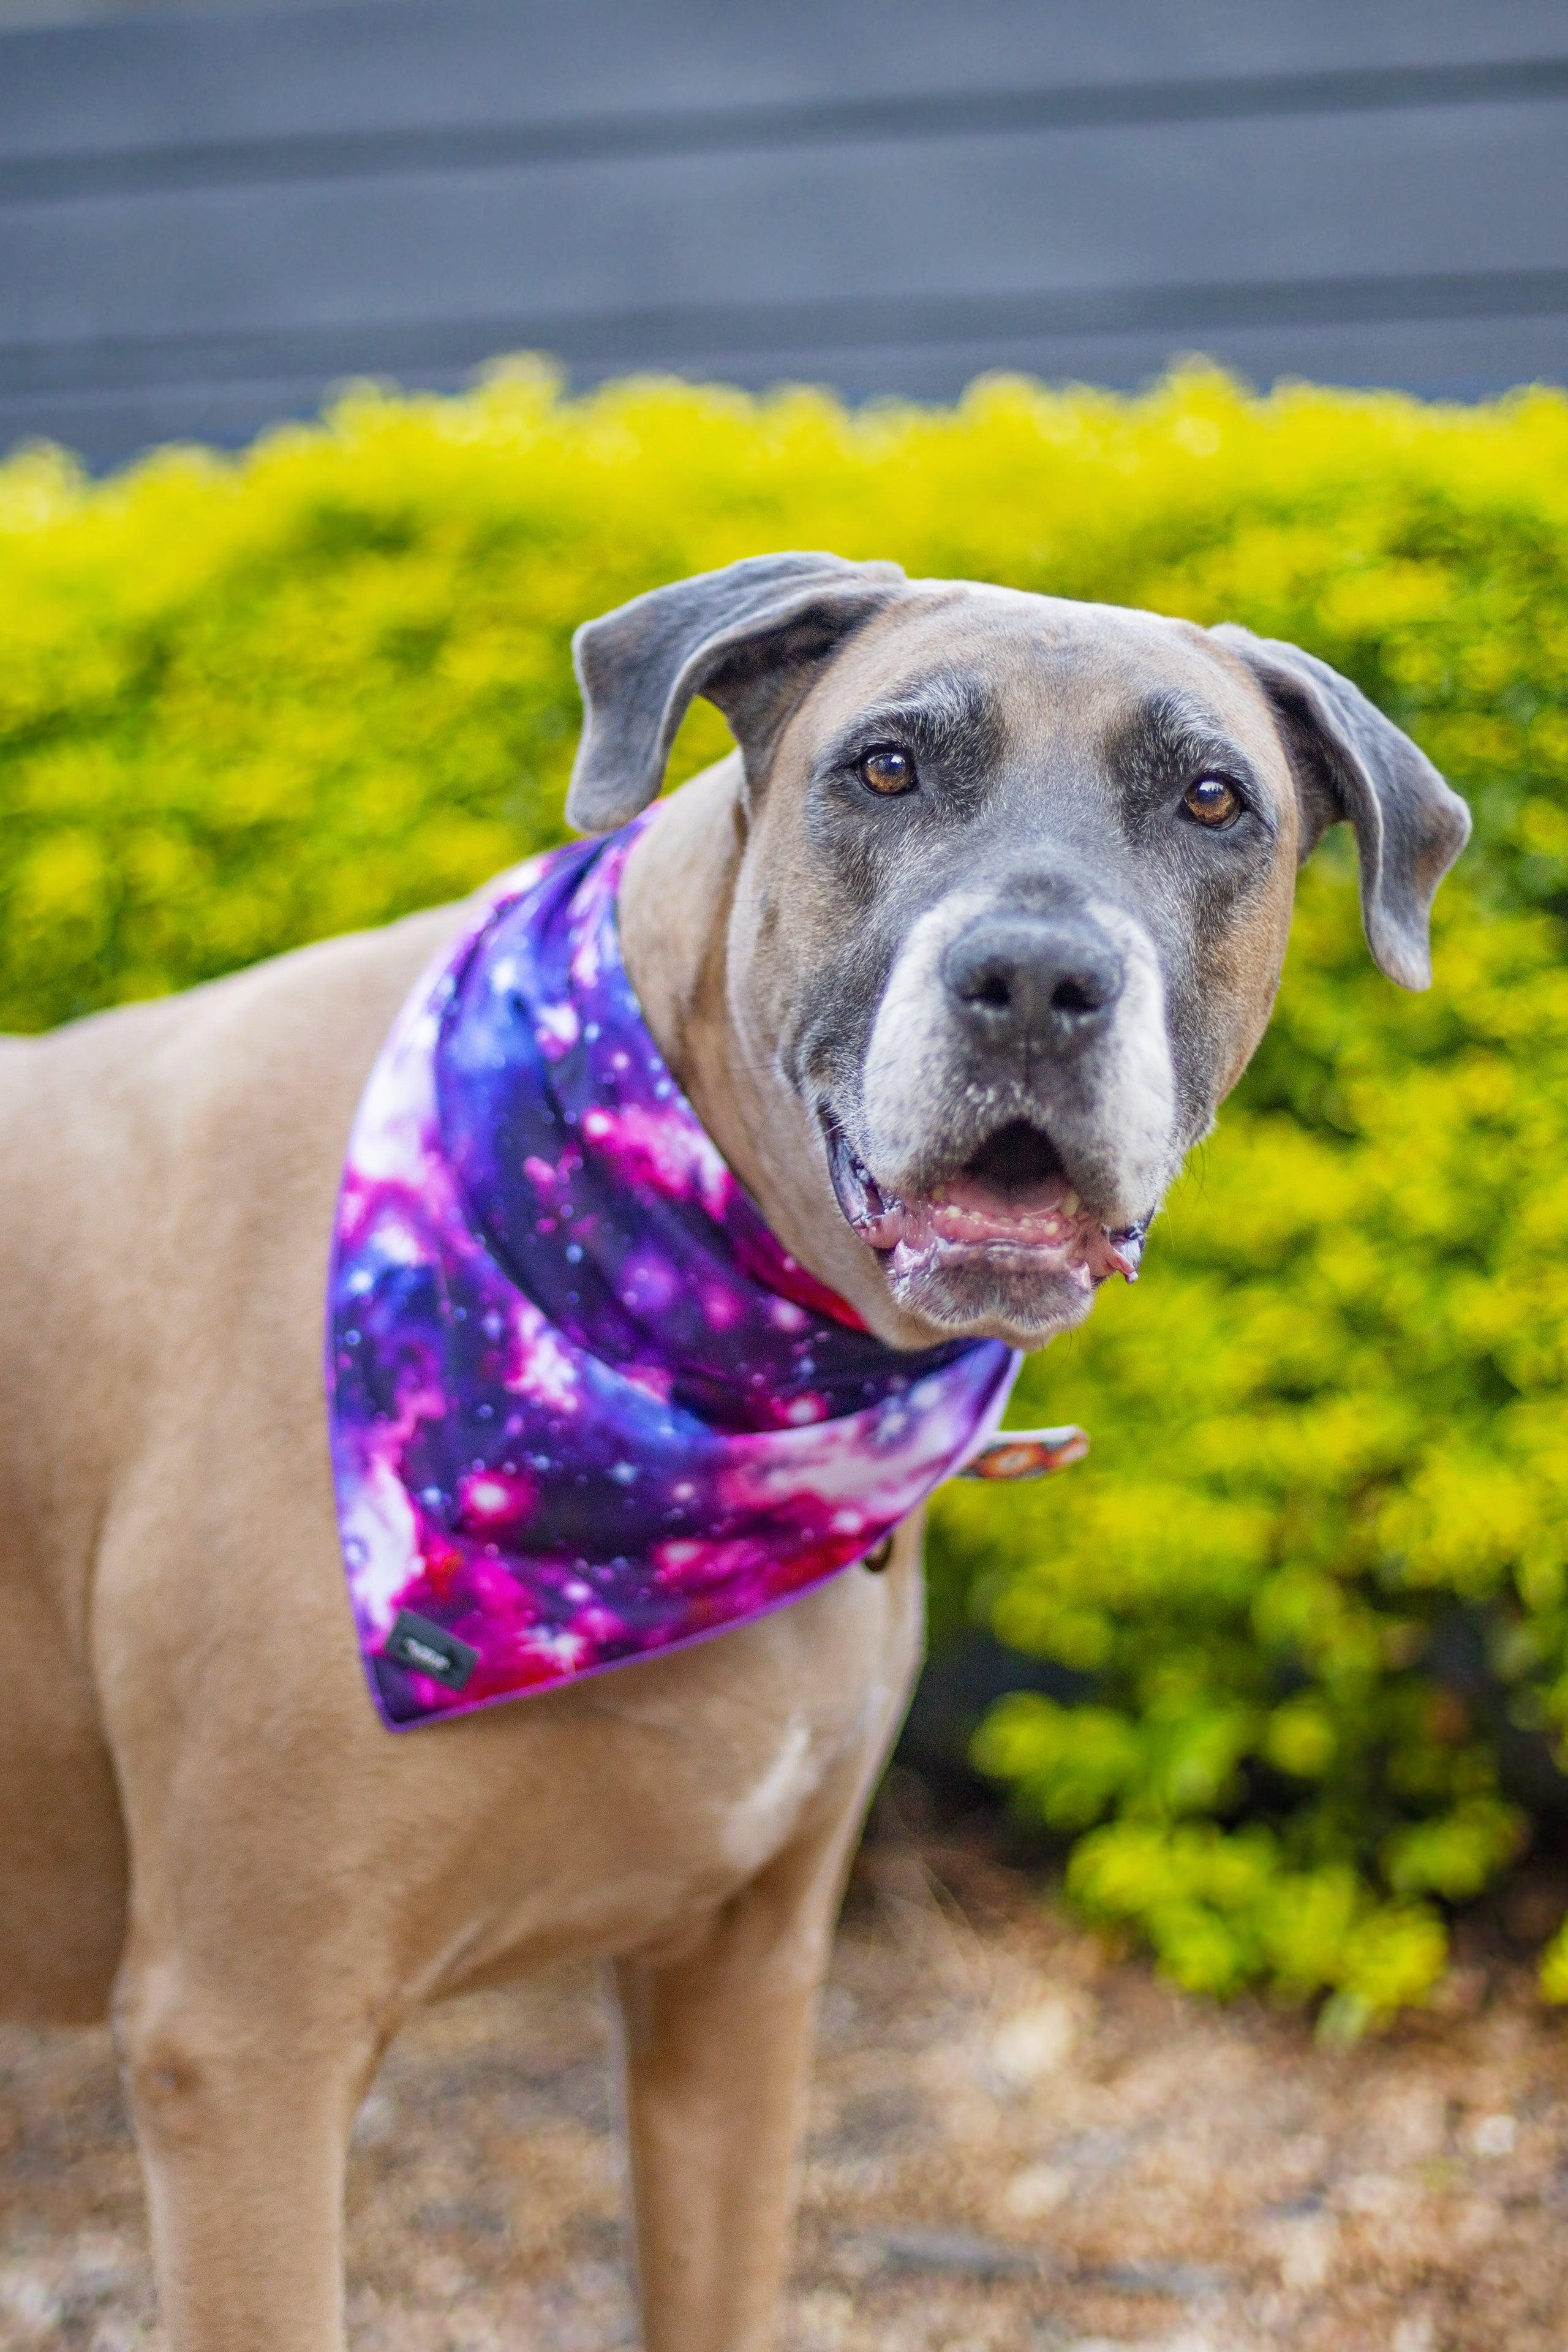 Galaxy - Tie Up Dog Bandana-Dizzy Dog Collars